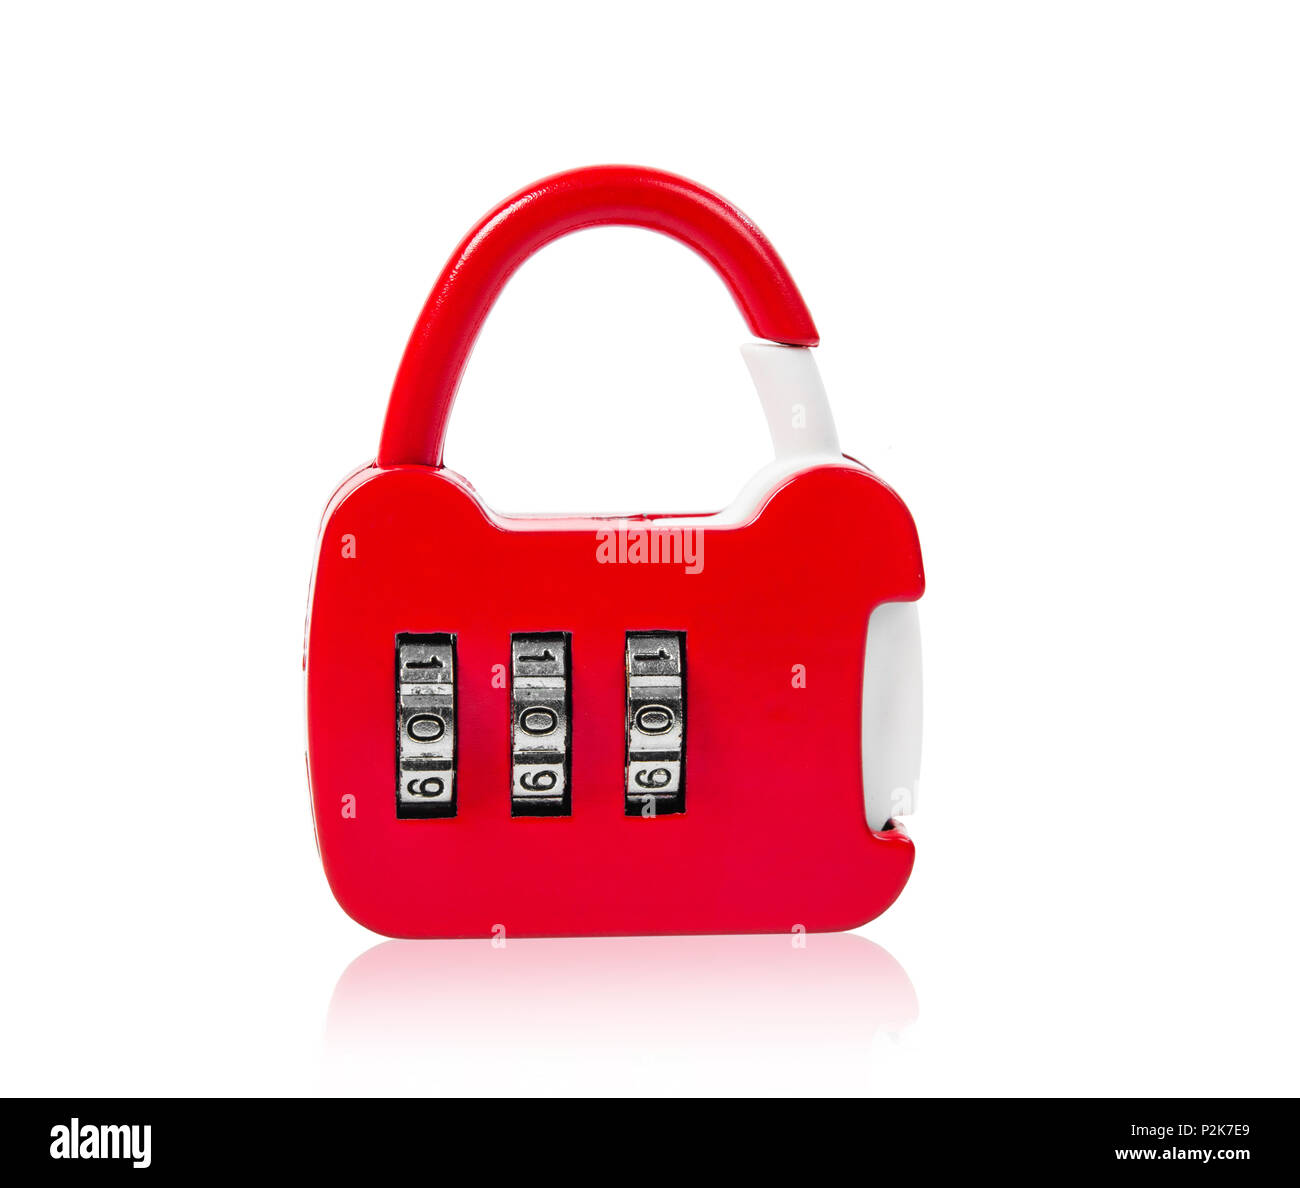 Red master key isolation on white background, Save clipping path. Stock Photo